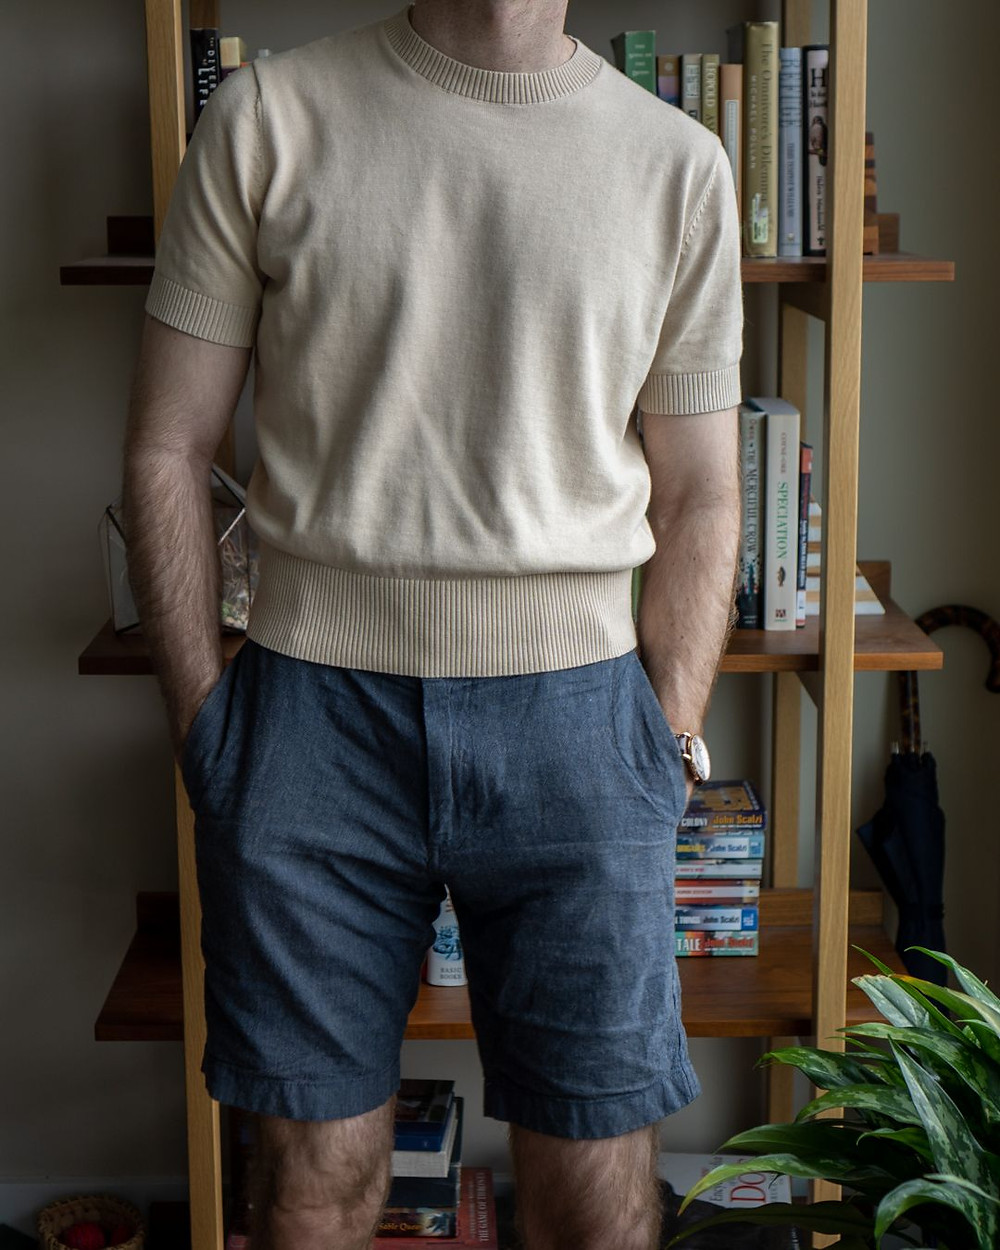 The Anthology cream knitted t-shirt with J. Crew shorts